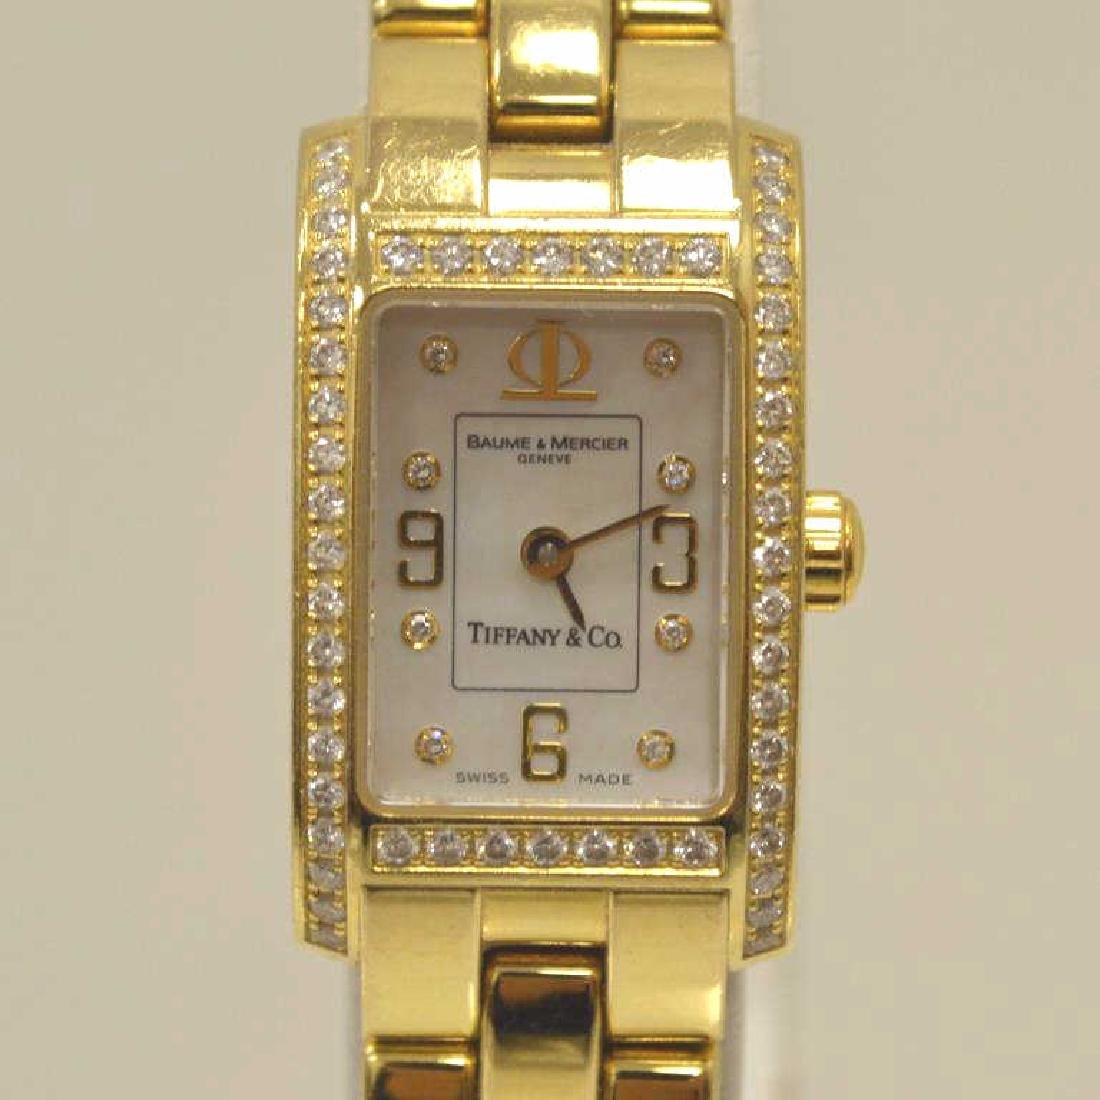 18kt Tiffany & Co., Baume & Mercier diamond watch - 2